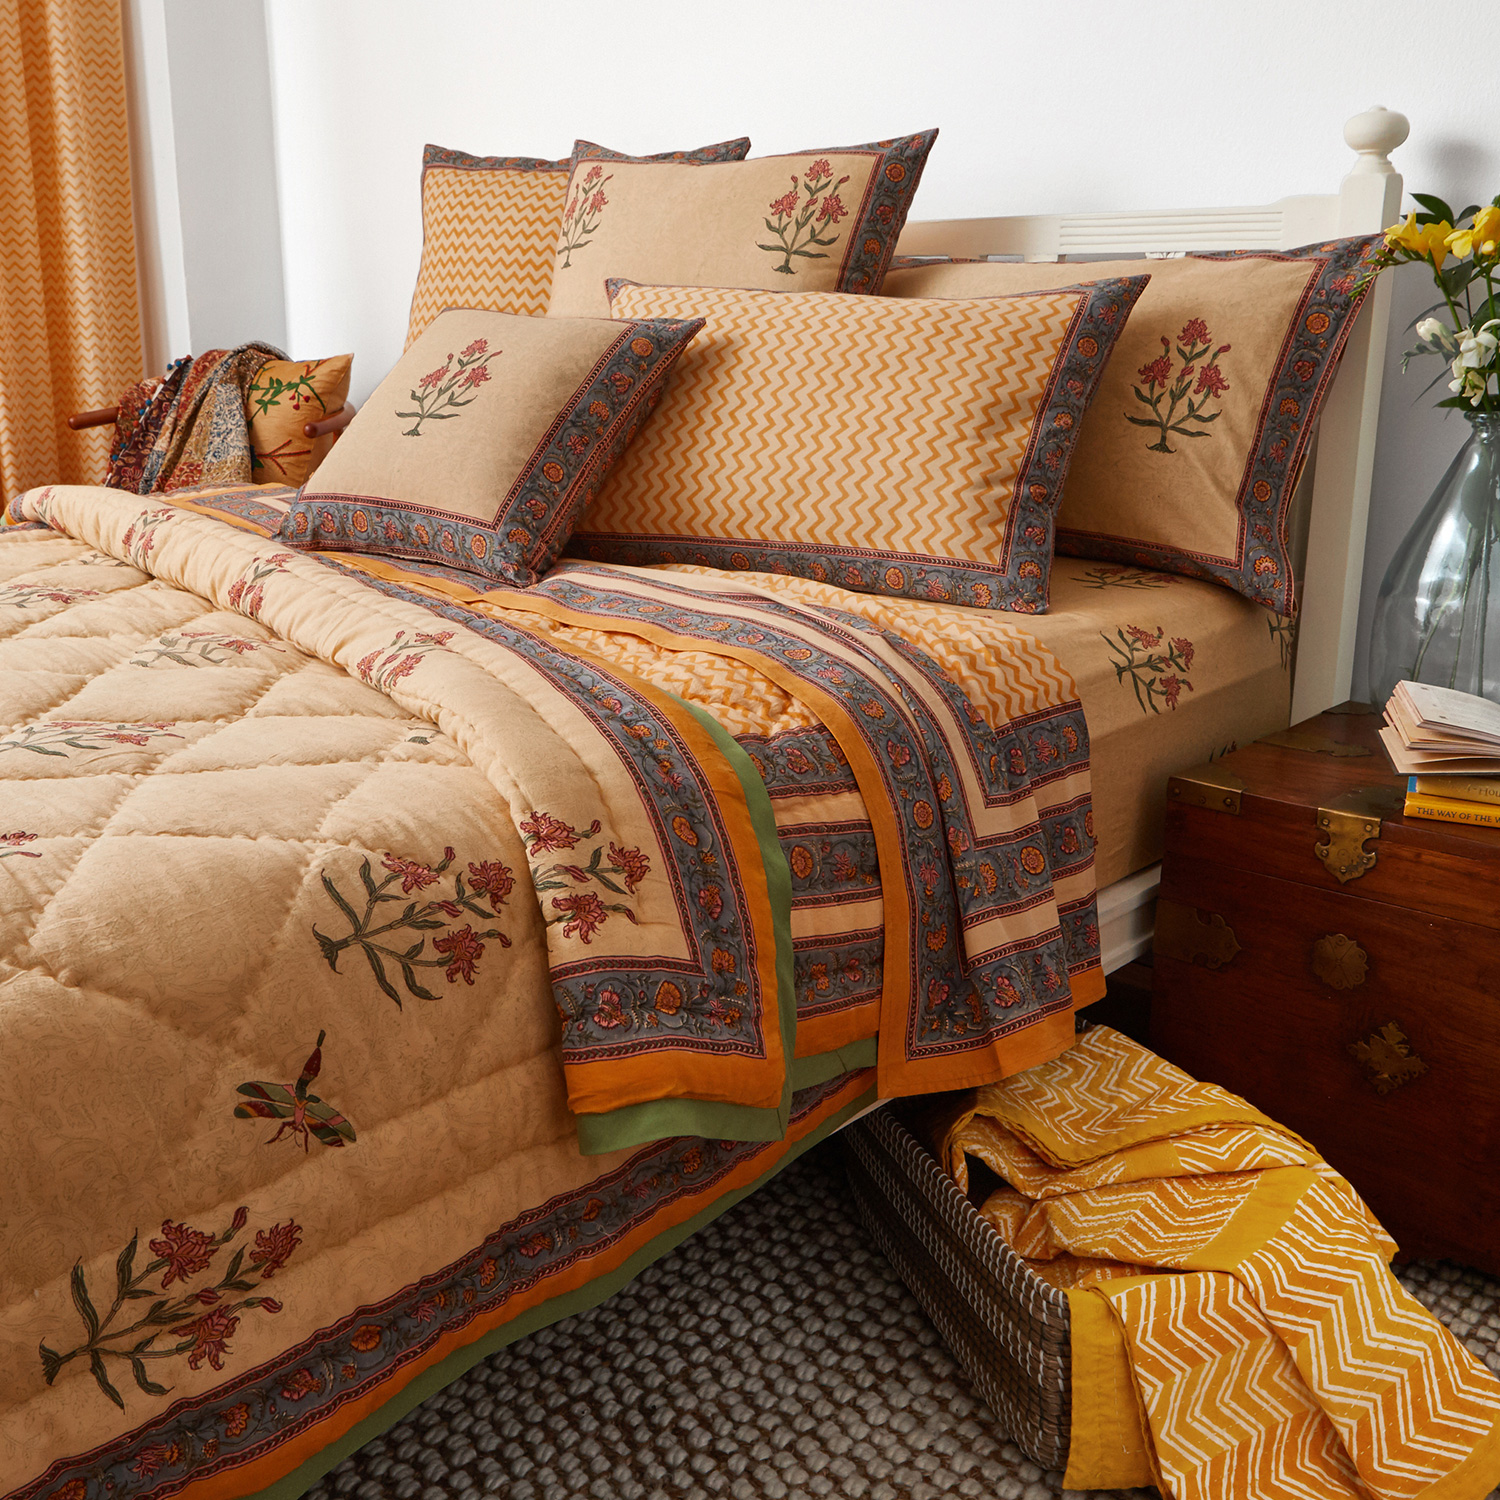 Lightly Quilted Cotton Rich Bedspread Bed Runner Filled Cushion Saffron Yellow